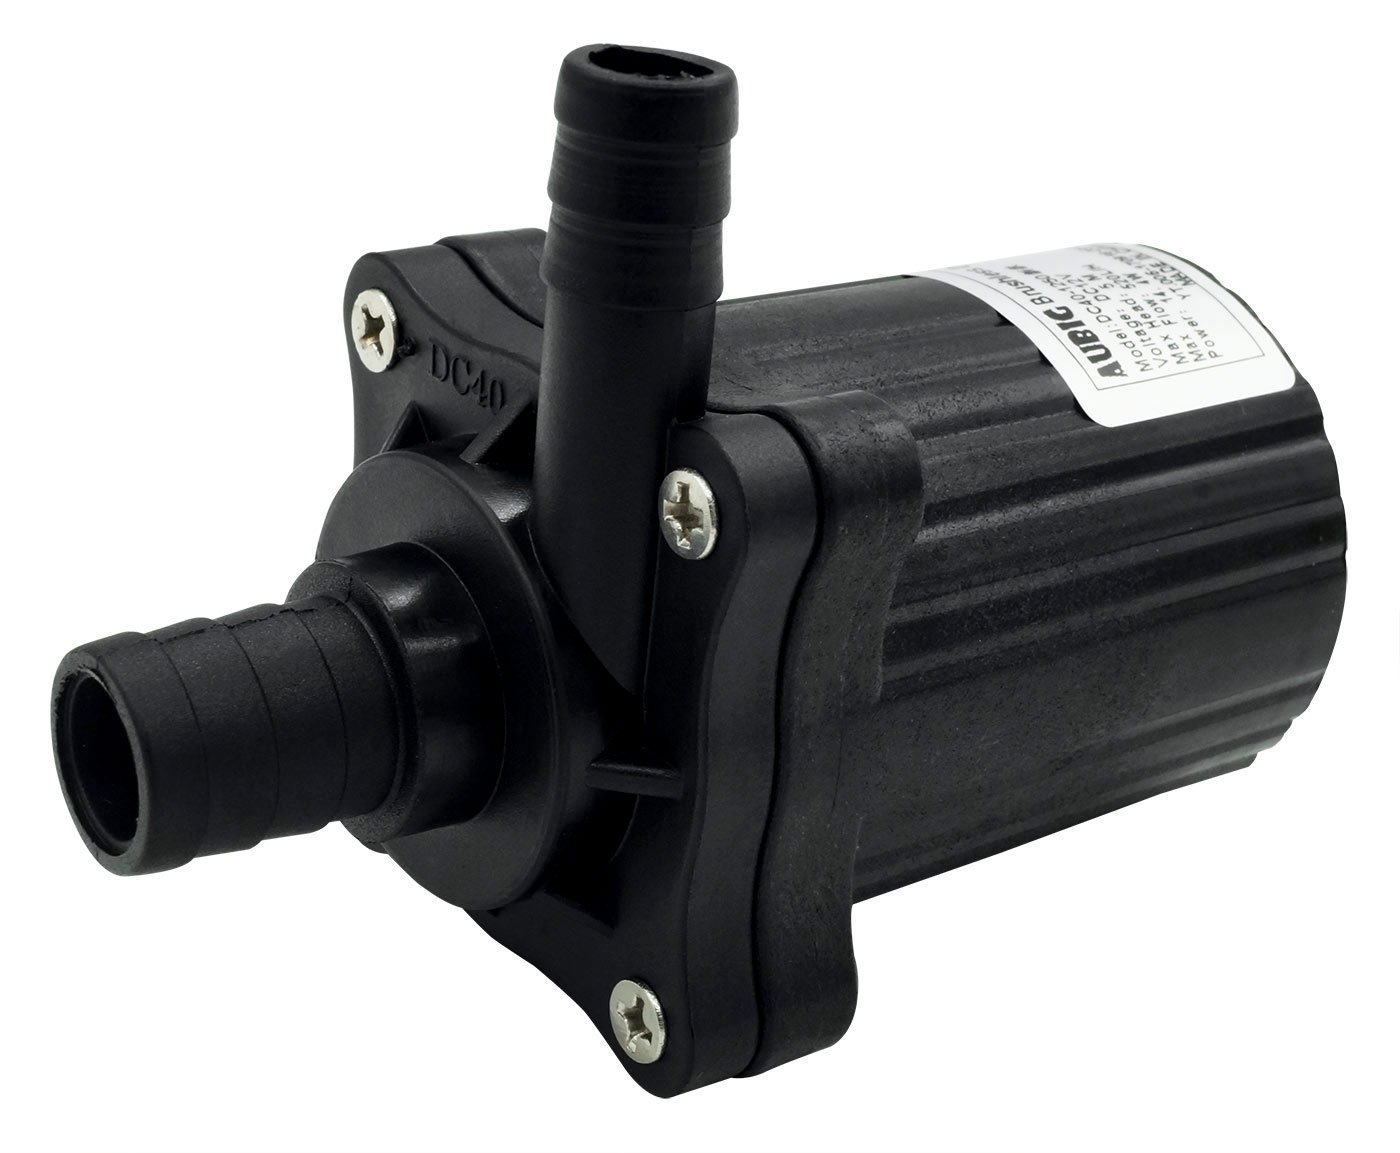 Aubig DC40-1250 DC12V Brushless Magnetic Drive Centrifugal Submersible Water Pump CPU Cooling 1.2A 520L/H 5.0M 14.40W